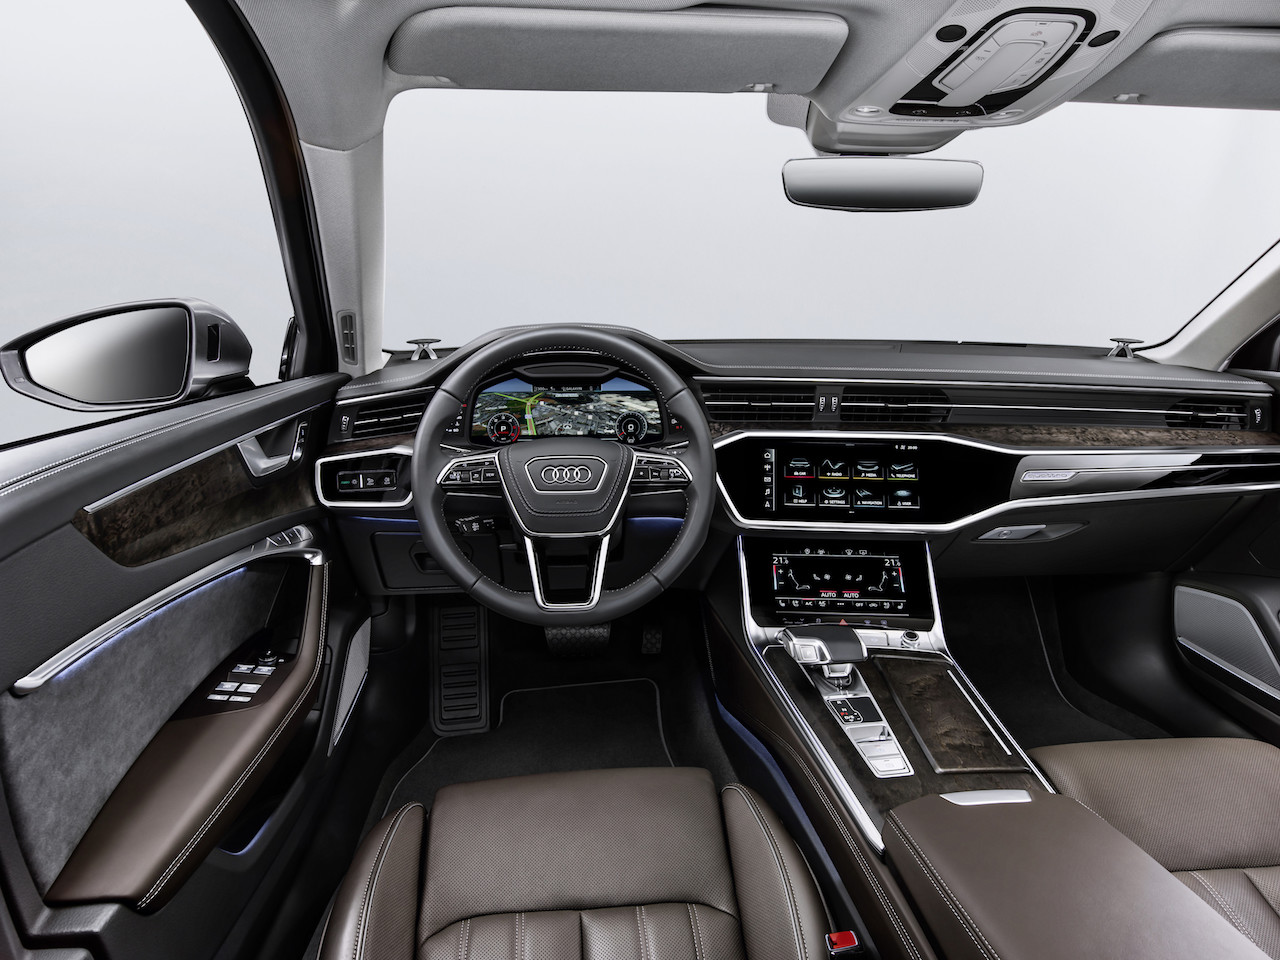 2018 Audi A6 interior dashboard